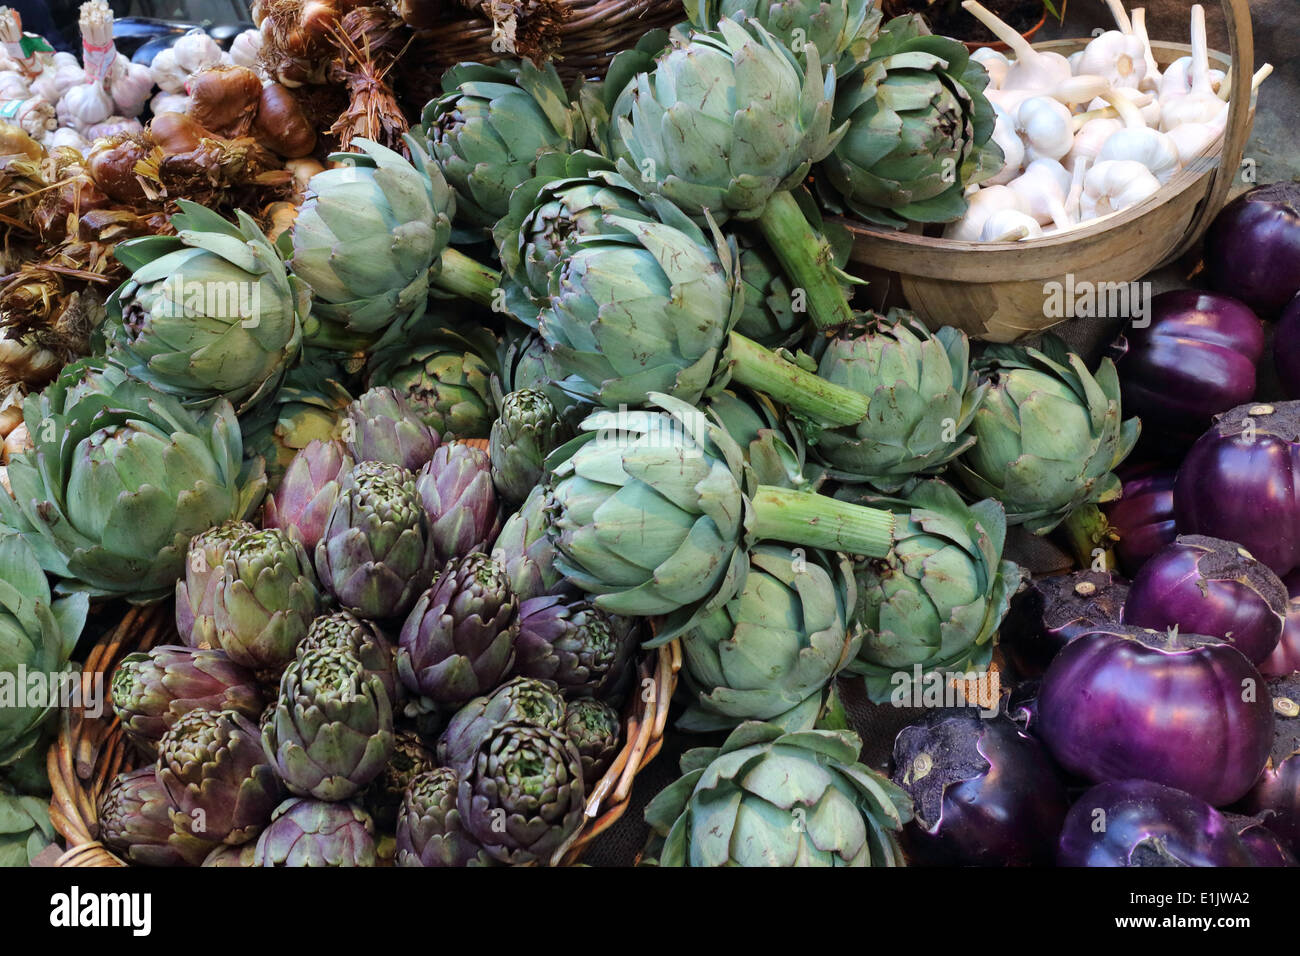 Organically grown Artichoke, Purple Aubergine and Garlic vegetables in the market stall - Stock Image